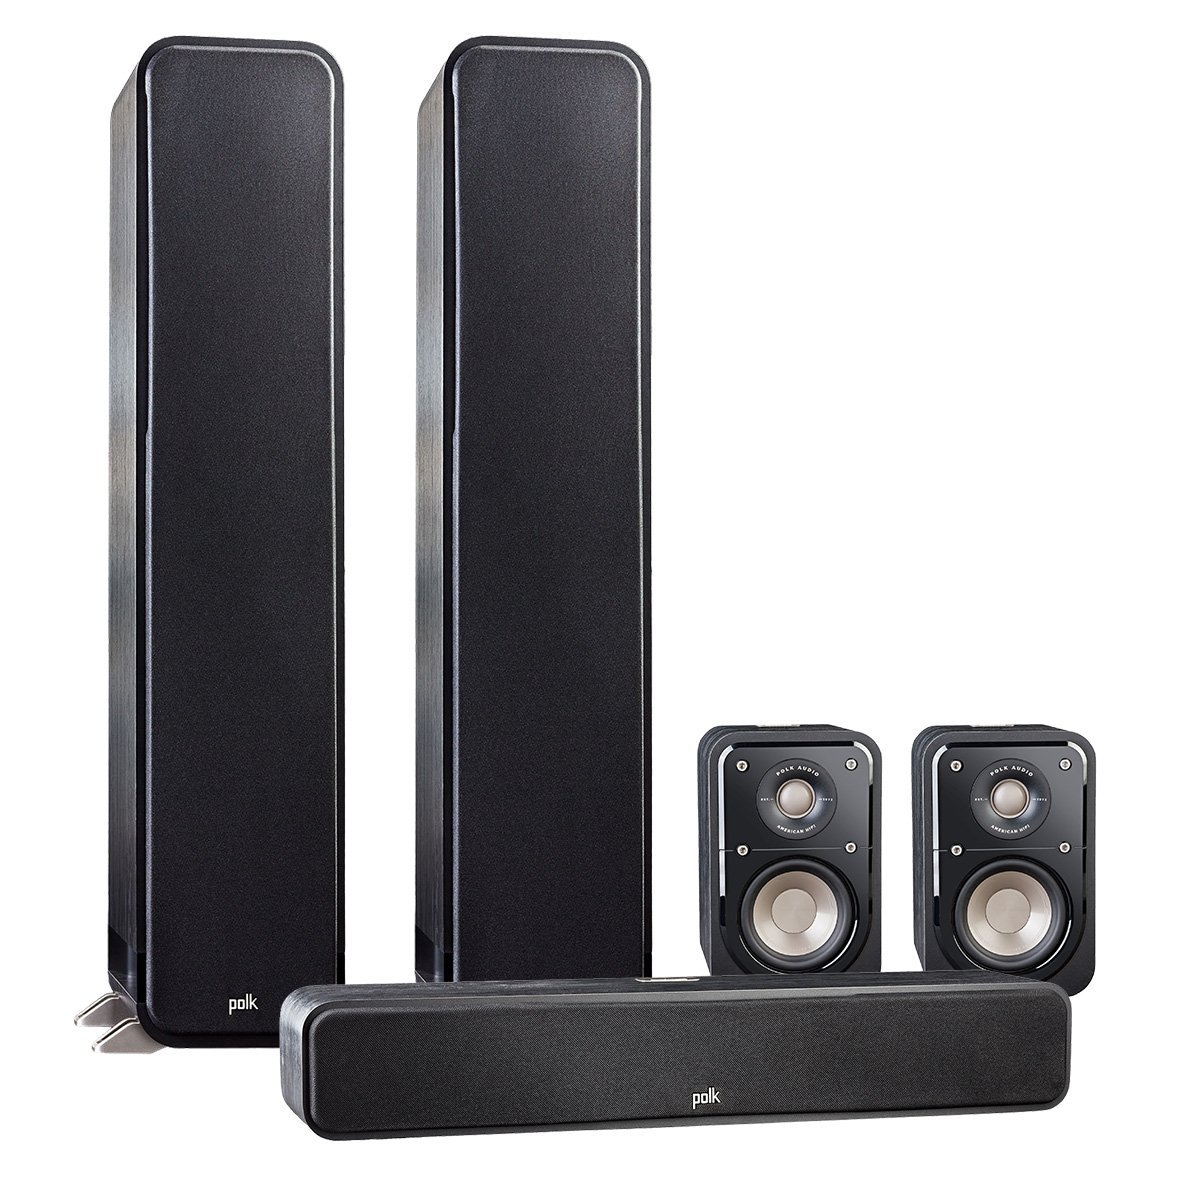 Polk Audio Signature 5.0 System with 2 S55 Tower Speaker, Polk S35 Center Speaker, 2 Polk S15 Bookshelf Speakers, Black by Polk Audio